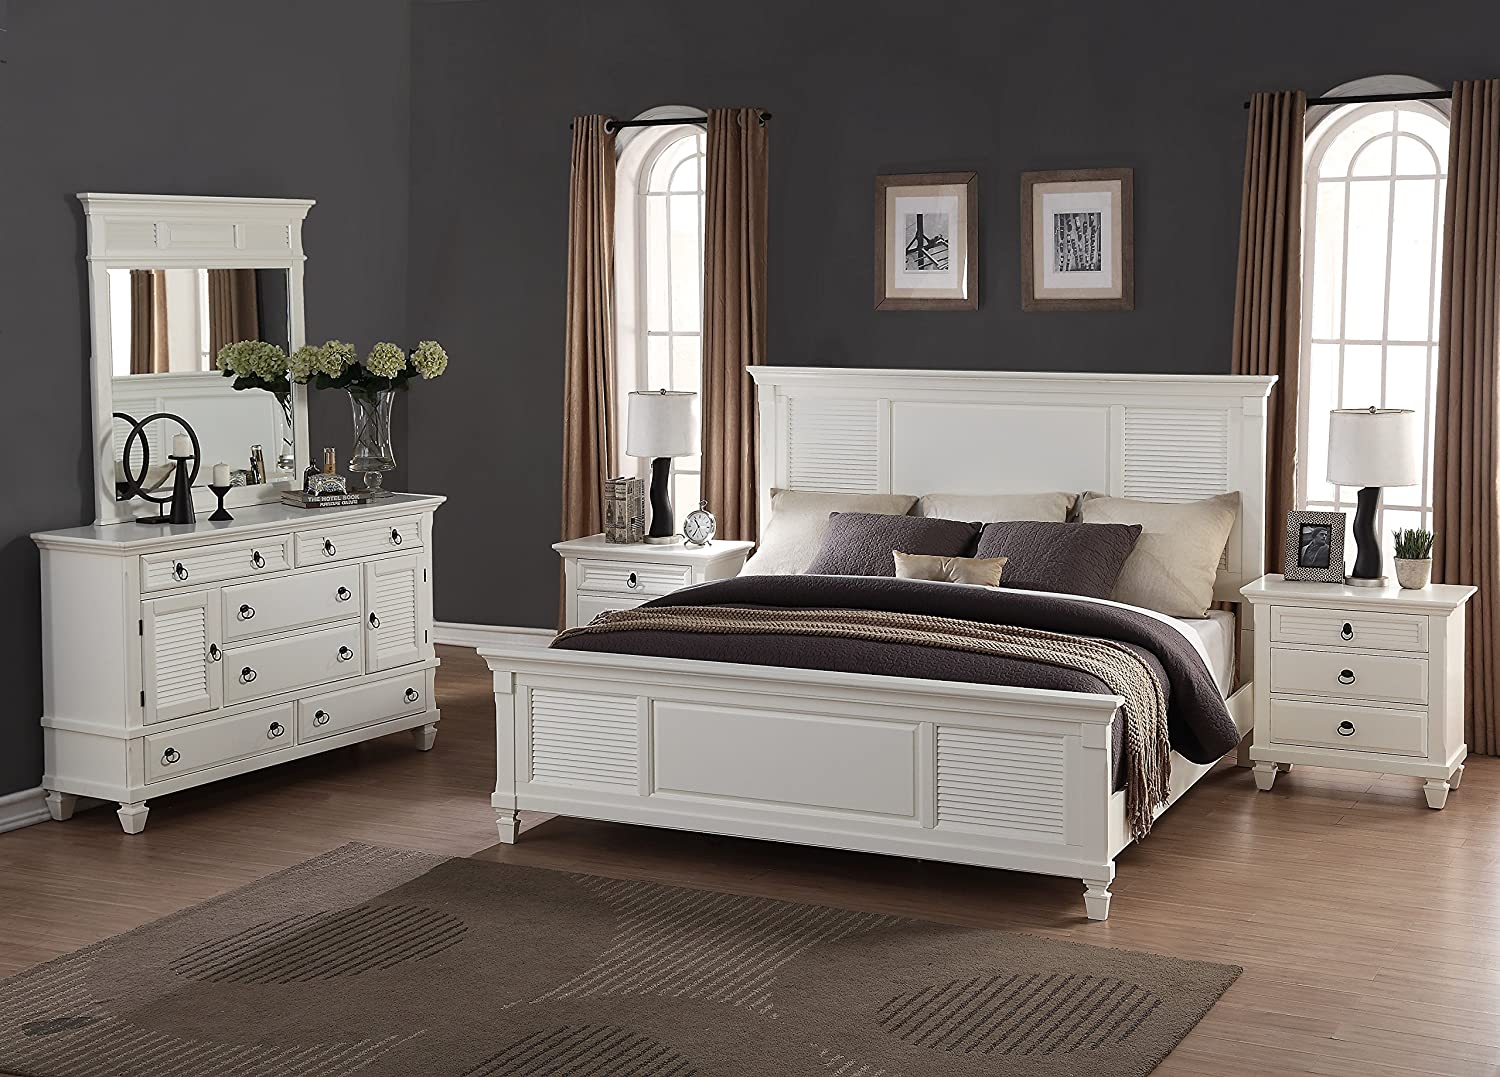 Delightful Amazon.com: Roundhill Furniture Regitina 016 Bedroom Furniture Set, Queen  Bed, Dresser, Mirror And 2 Nightstands, White: Kitchen U0026 Dining